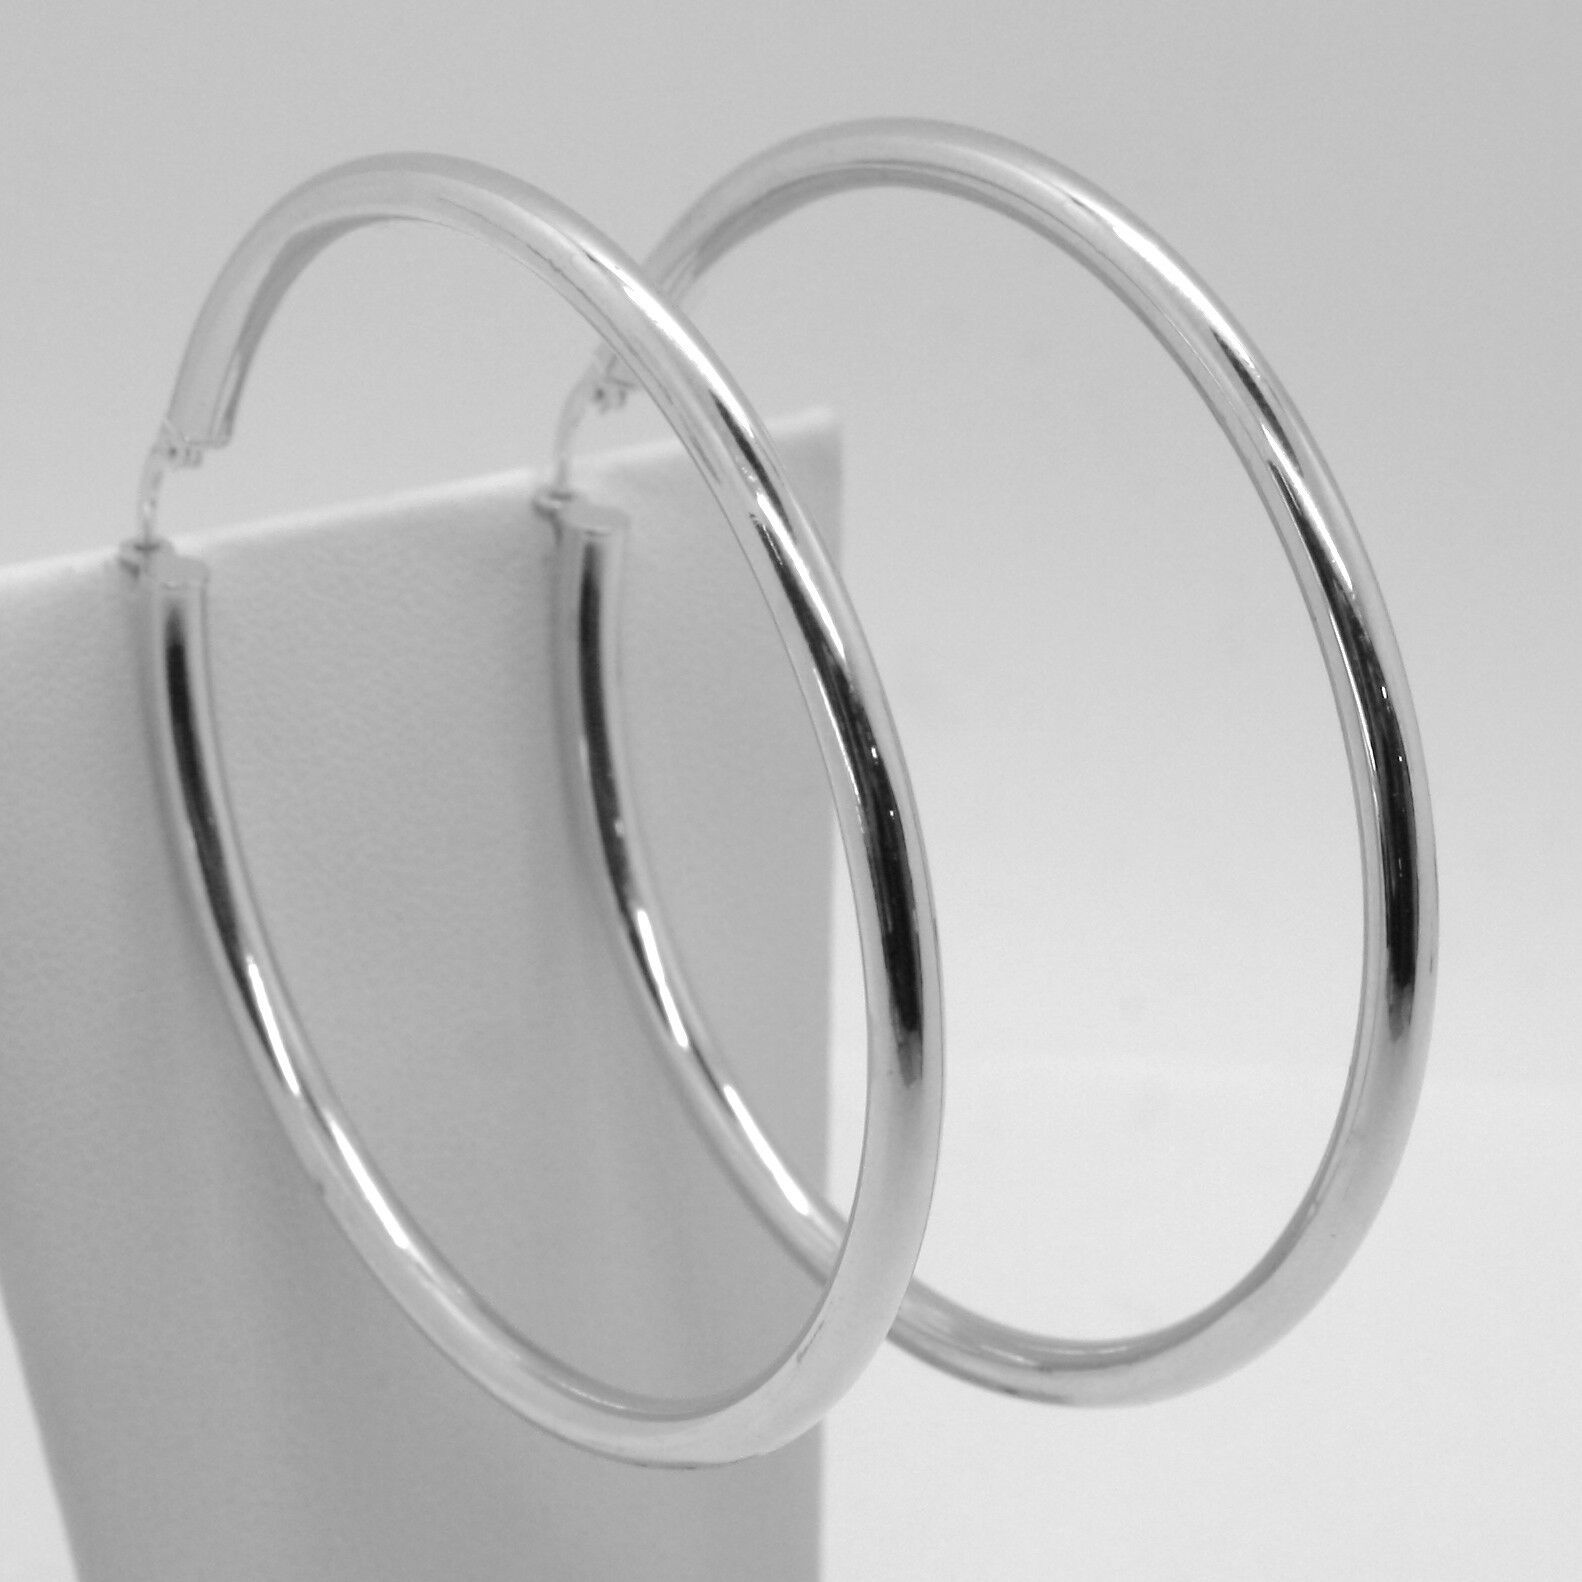 18K WHITE GOLD ROUND CIRCLE EARRINGS DIAMETER 60 MM, WIDTH 3 MM, MADE IN ITALY